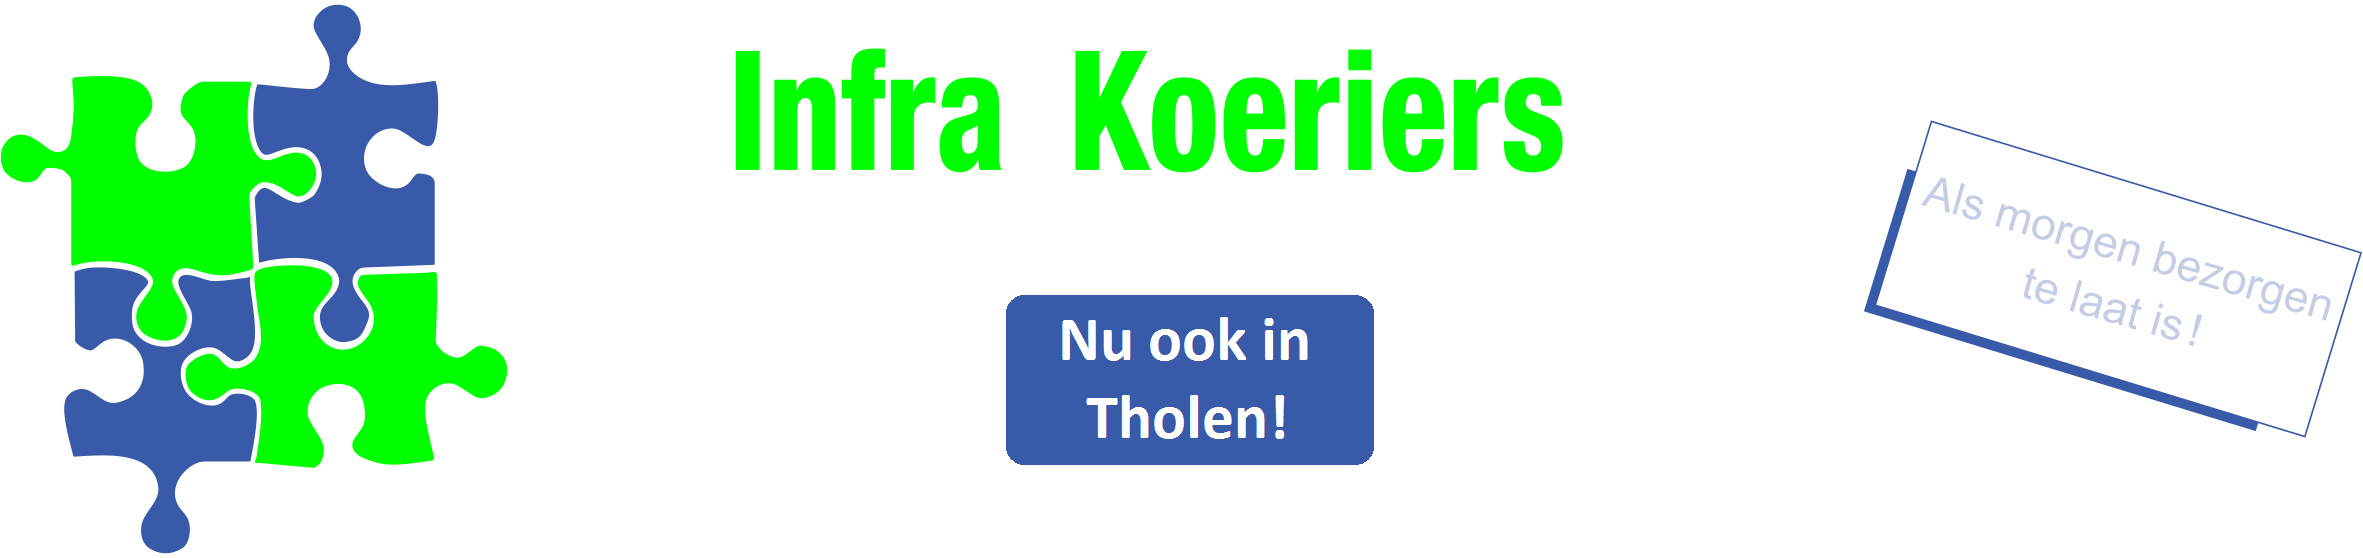 Infra koeriers logo payoff rgb